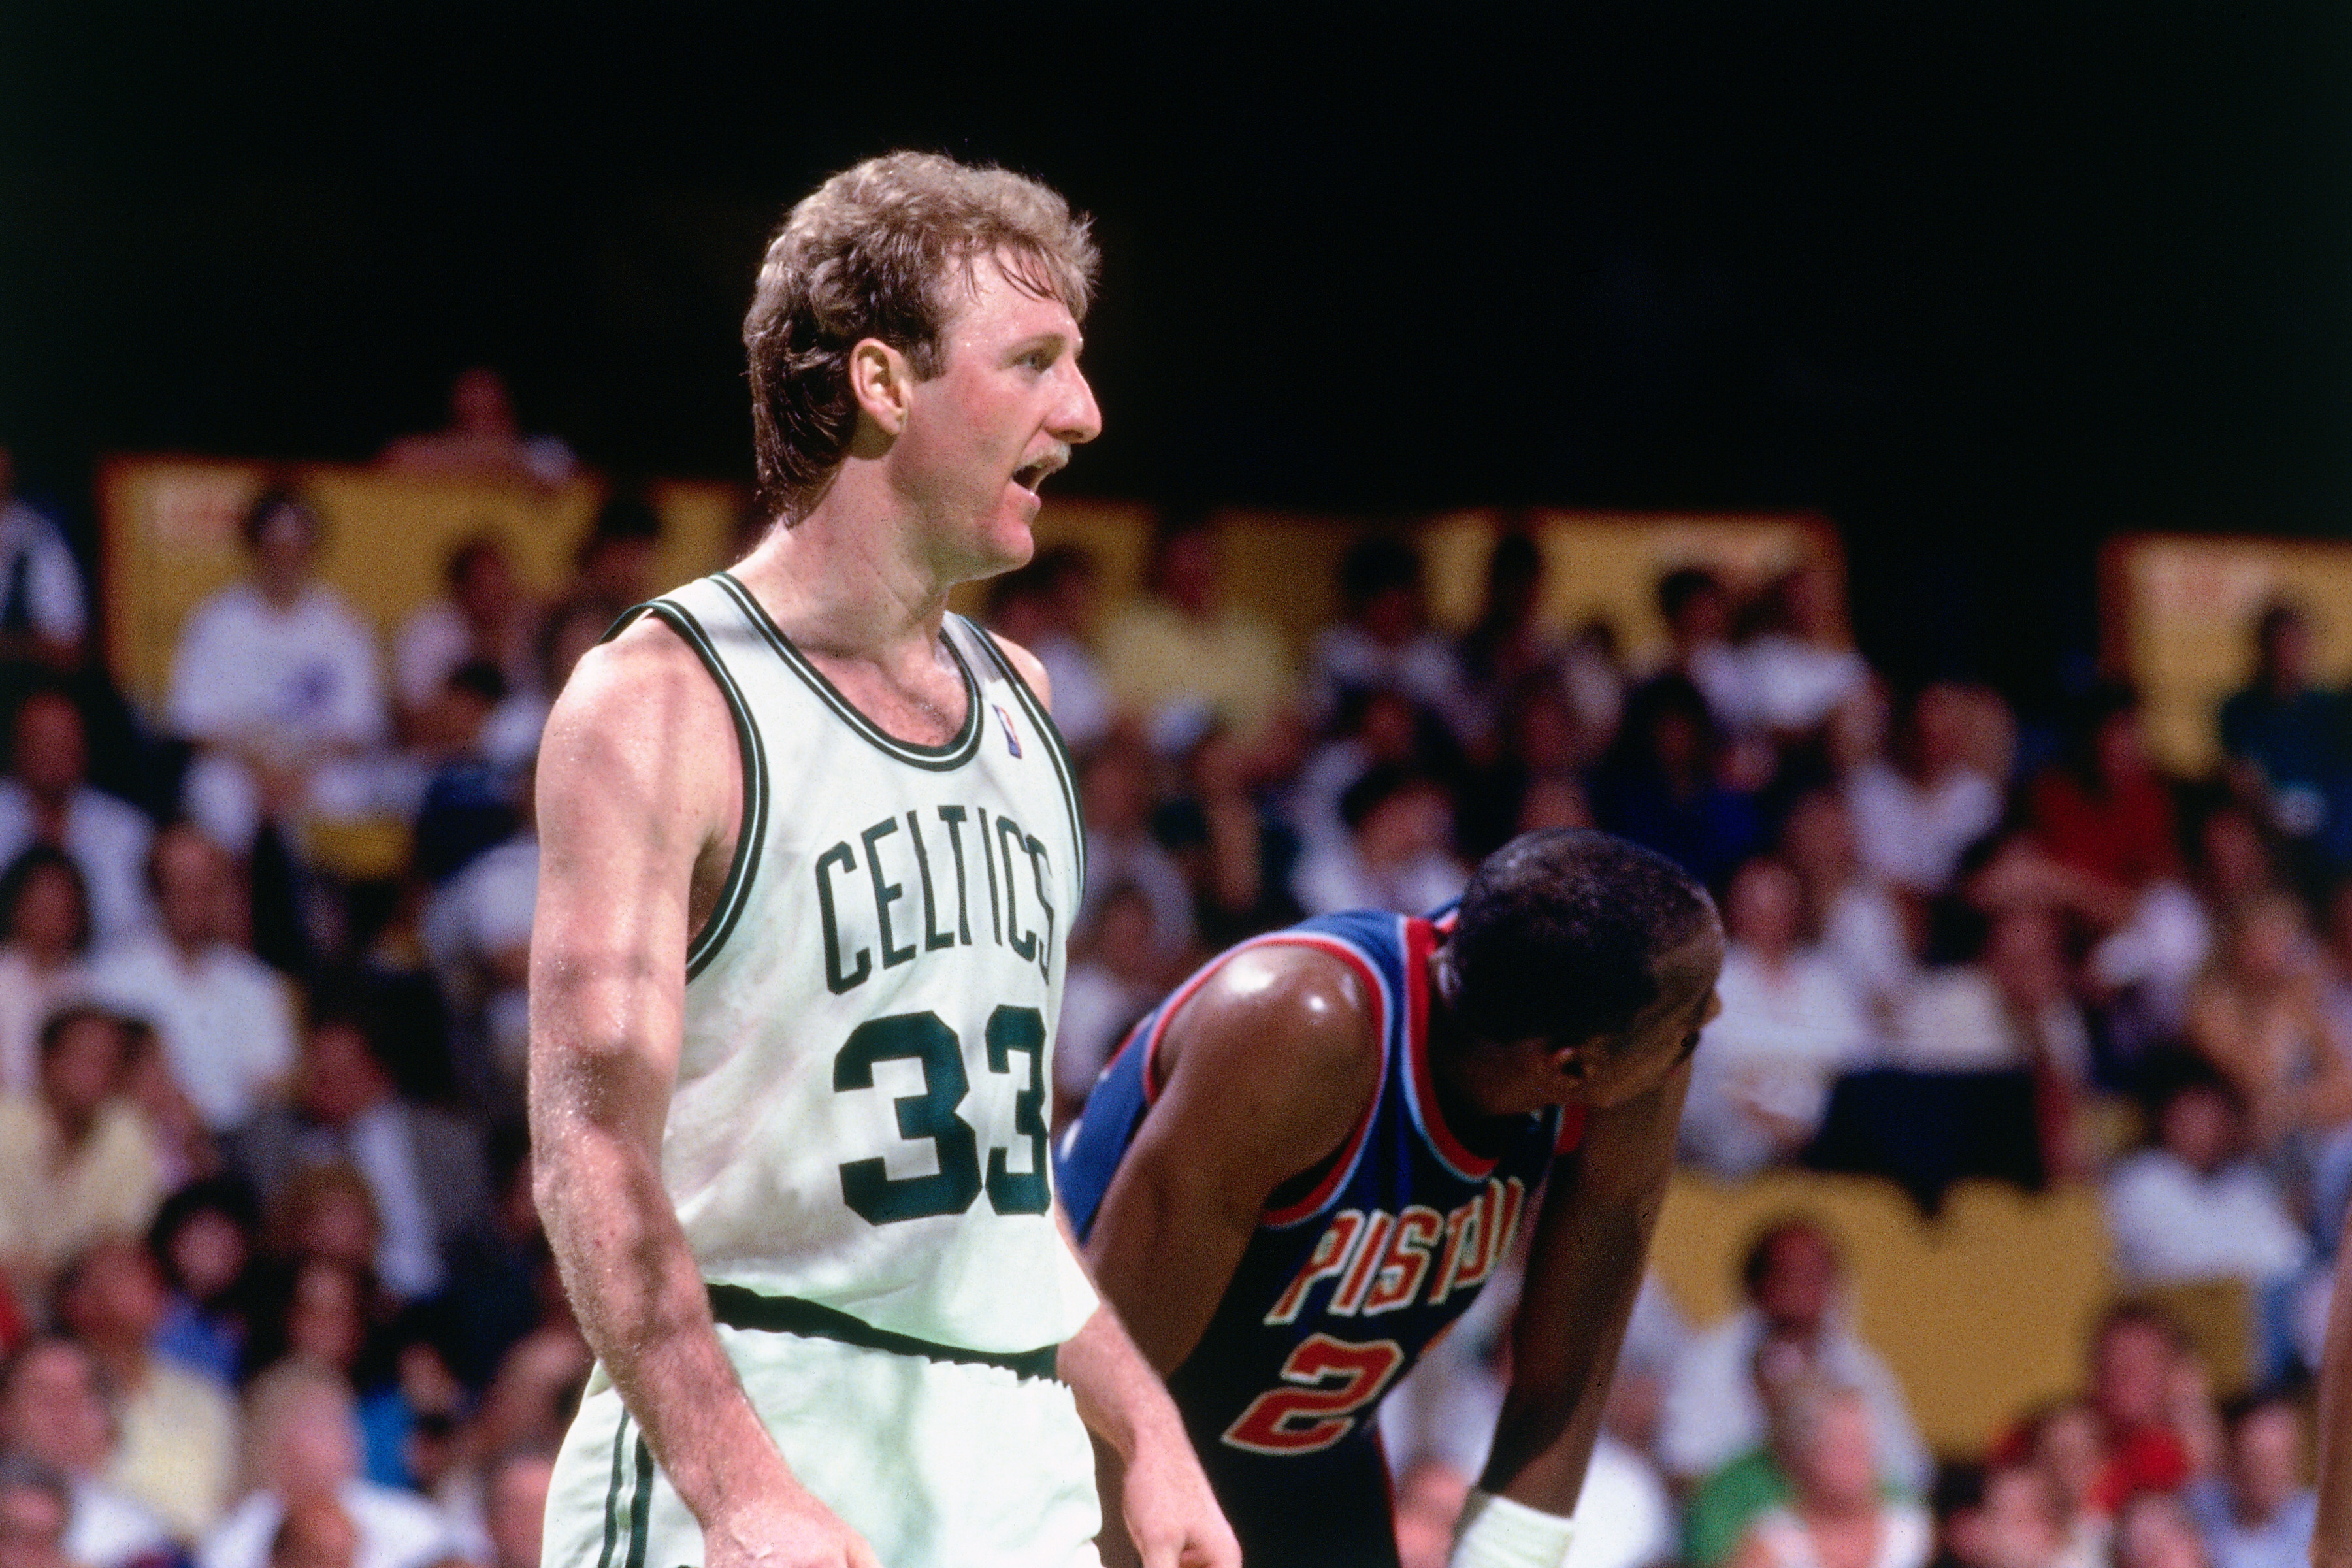 CIRCA 1987: Larry Bird #33 of the Boston Celtics playing the Pistons. (Photo by Jerry Wachter/Sports Imagery/Getty Images)